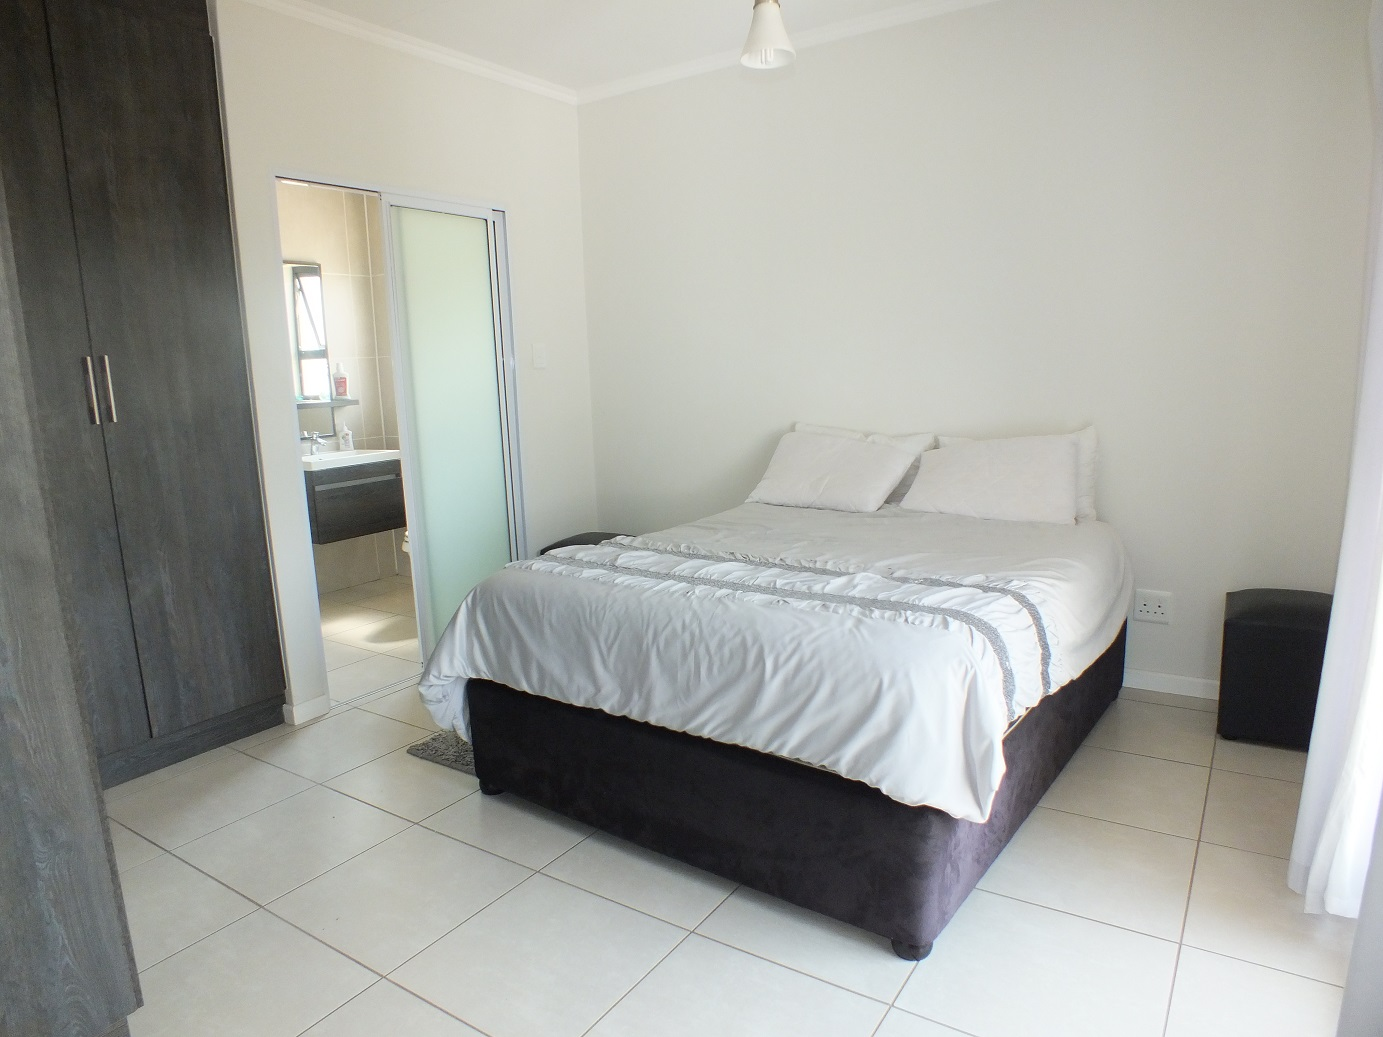 1 Bedroom Apartment for sale in Bryanston ENT0067747 : photo#3